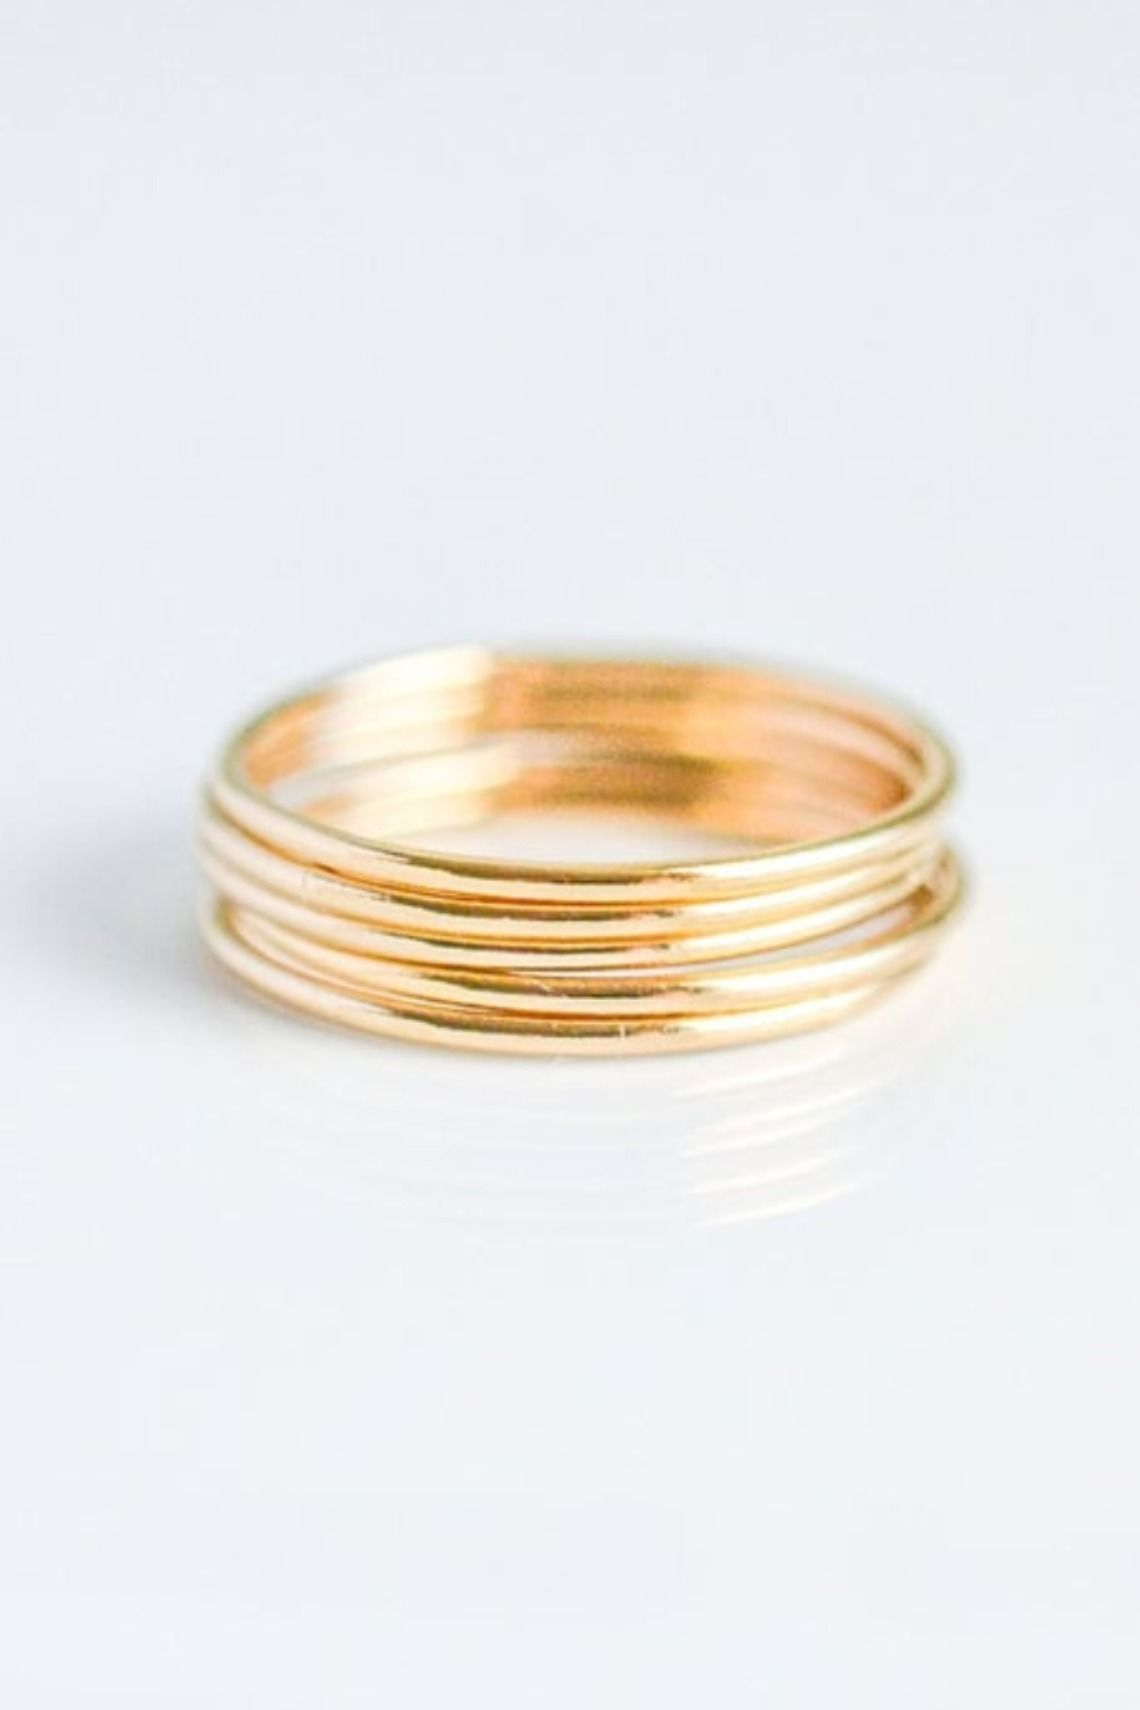 14k Gold Filled Stacking Ring Set For Women Minimalist Goldfilled Stackable Ring Simple Smooth Dainty Stack Ring Size 5 6 7 8 9 10 In 2020 Rose Gold Stacking Ring Stacking Ring Set Thin Band Ring